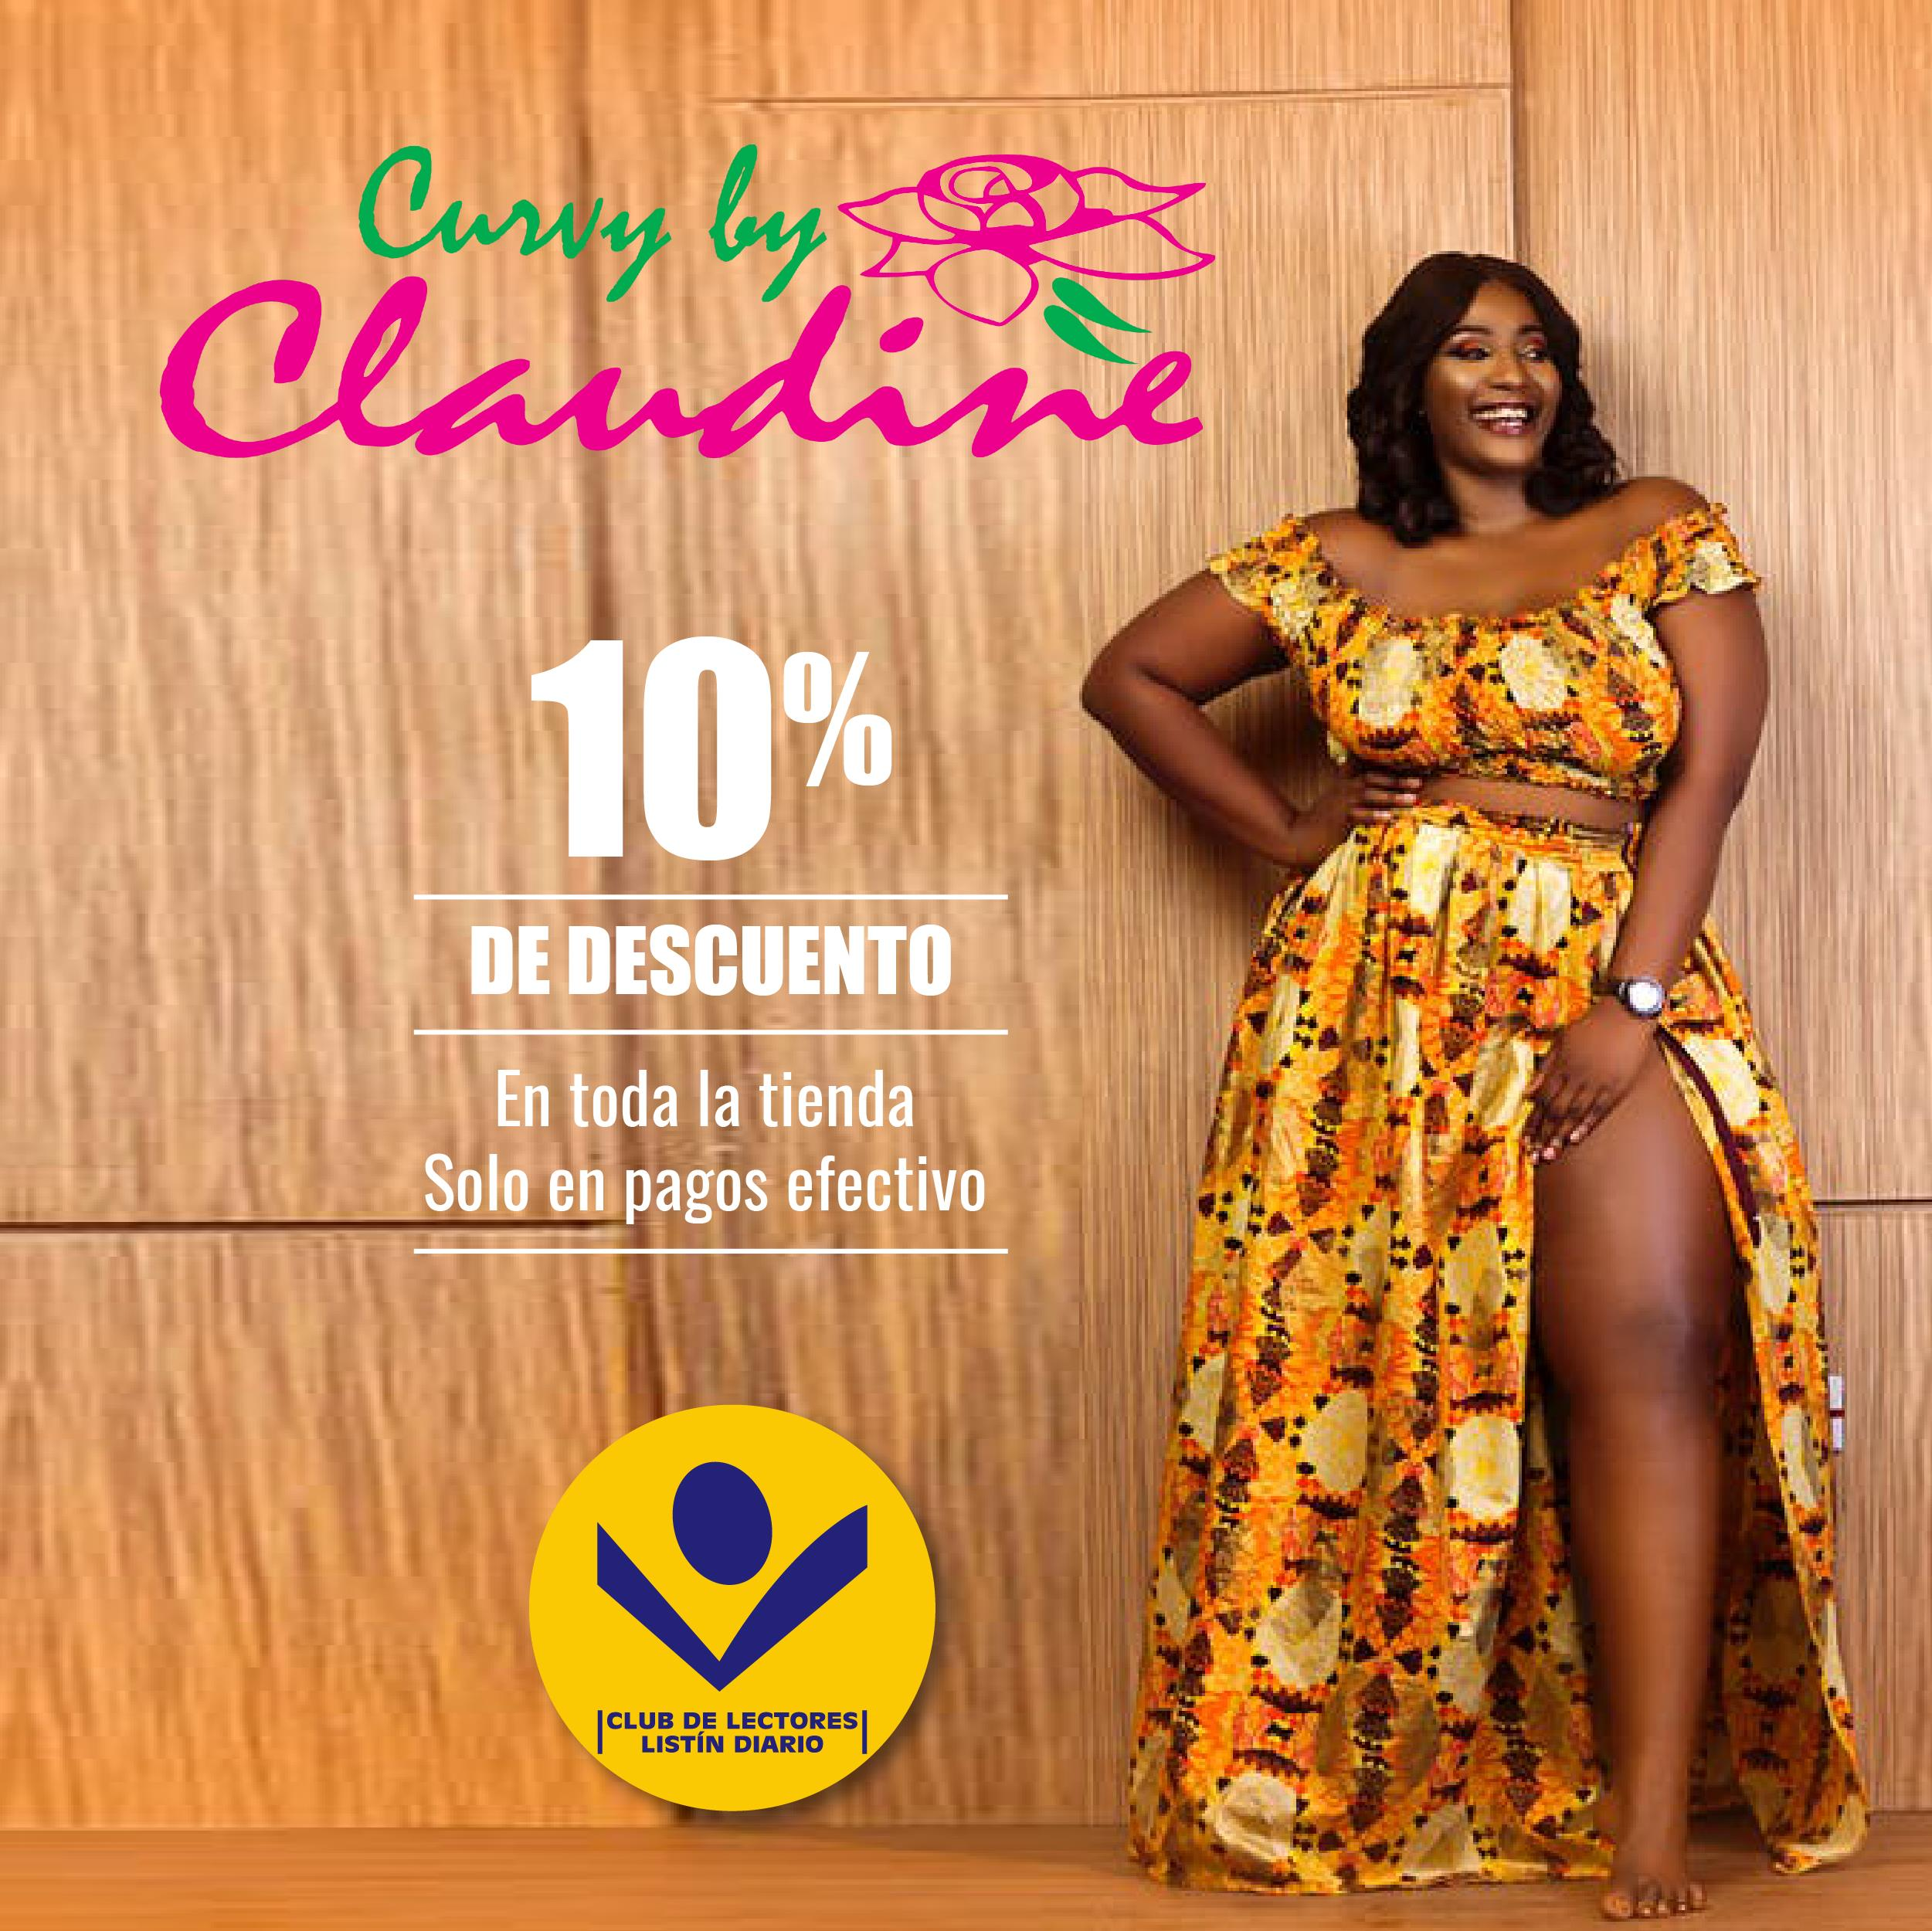 Curvy by Claudine